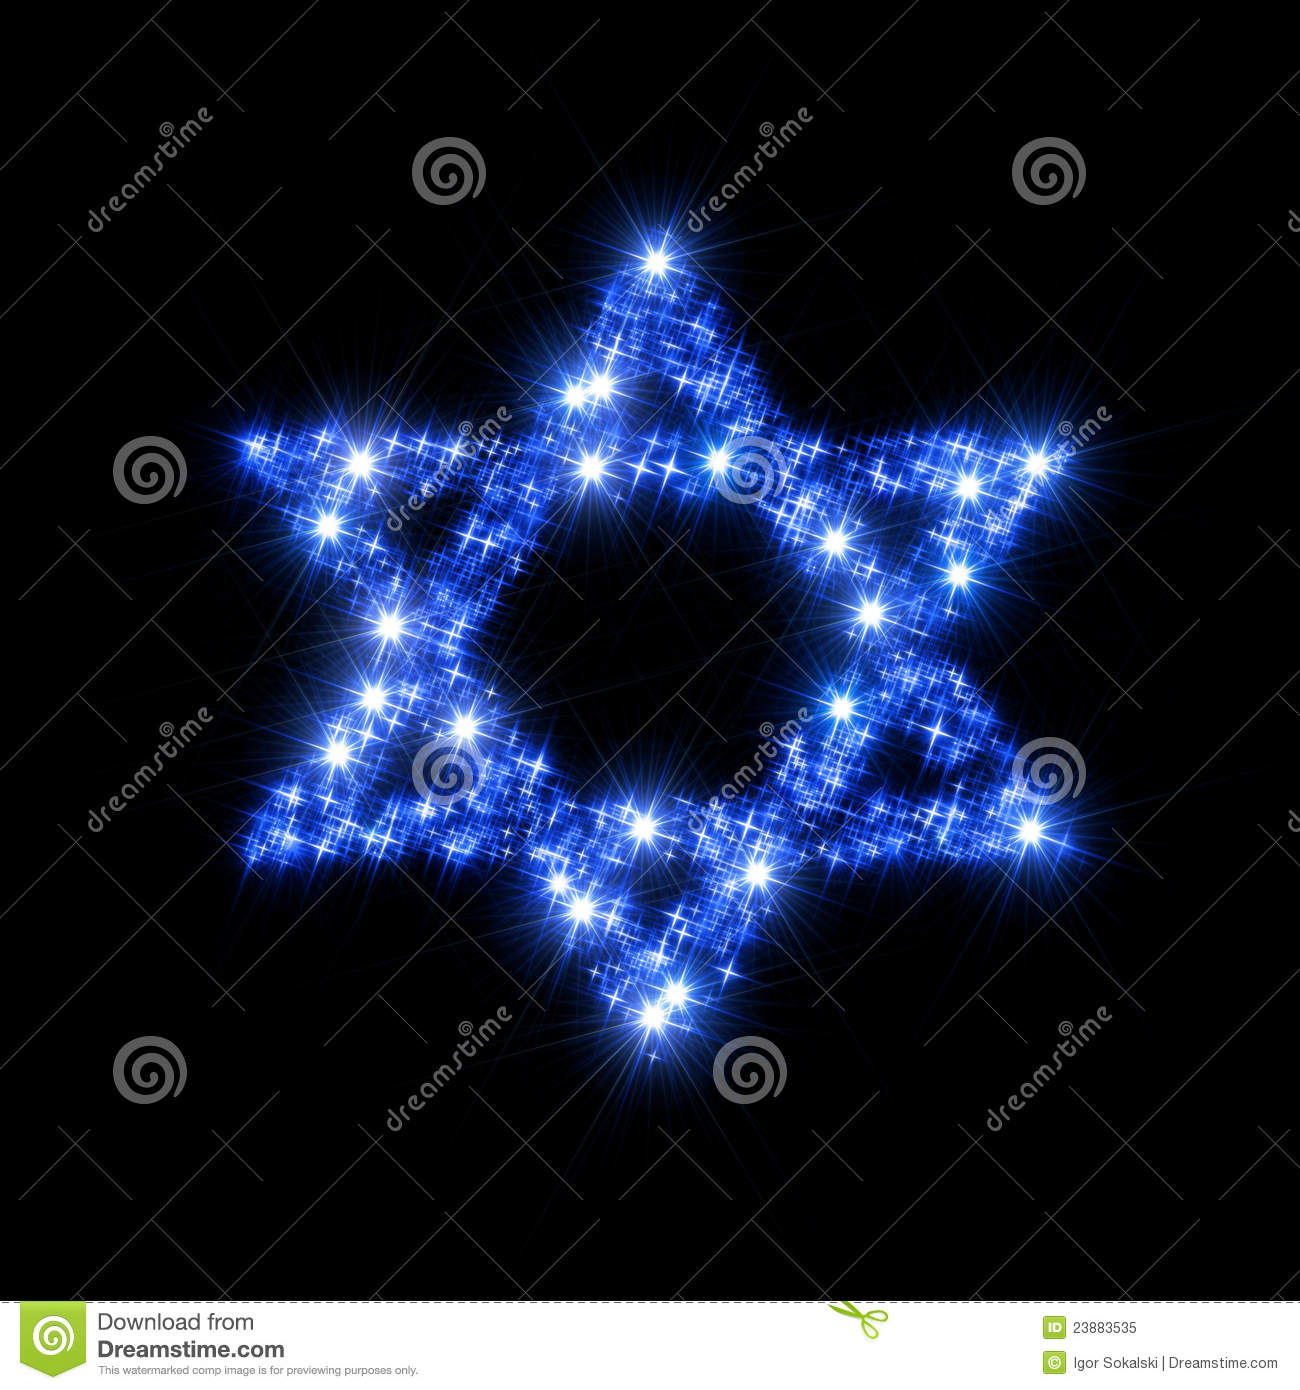 Abstract illustration representing decorative David Star (Magen David ...